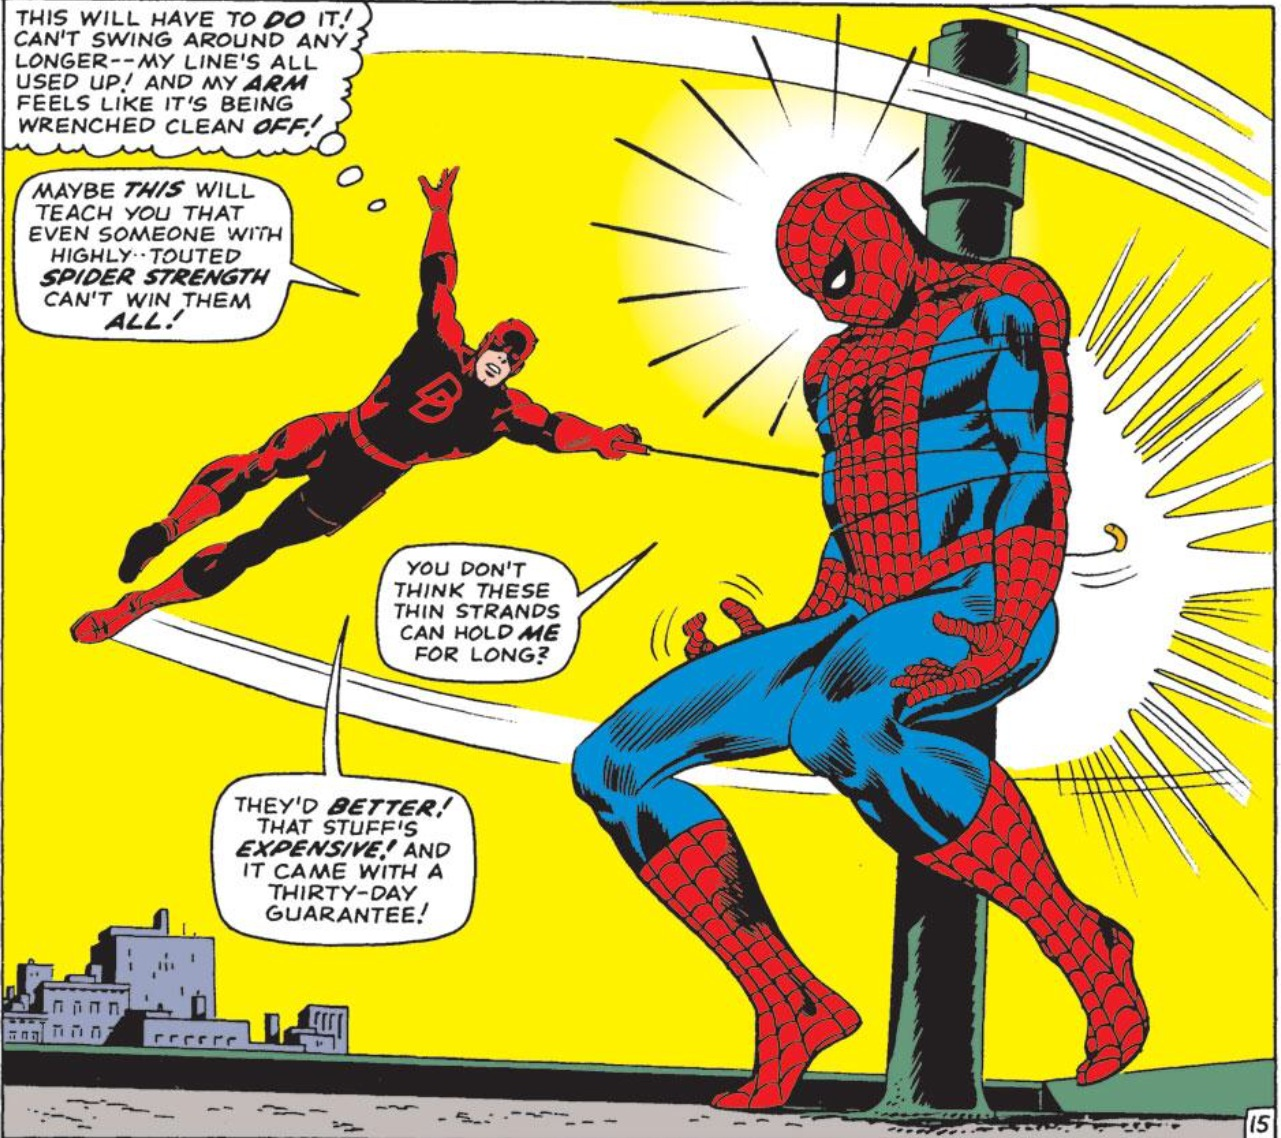 Daredevil, Spider-Man and Trading Places with John Romita